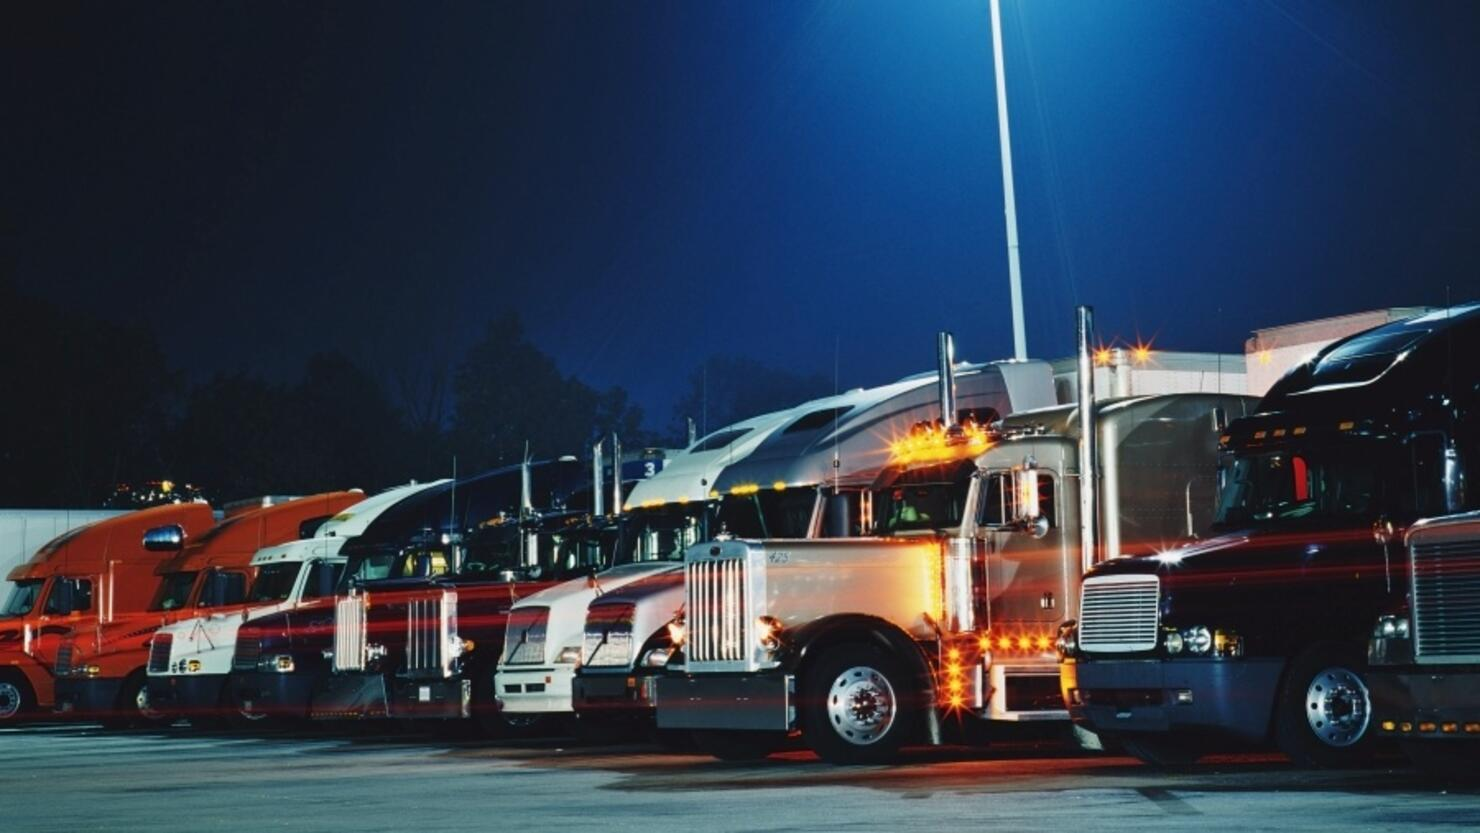 Semi-trucks in parking lot at night